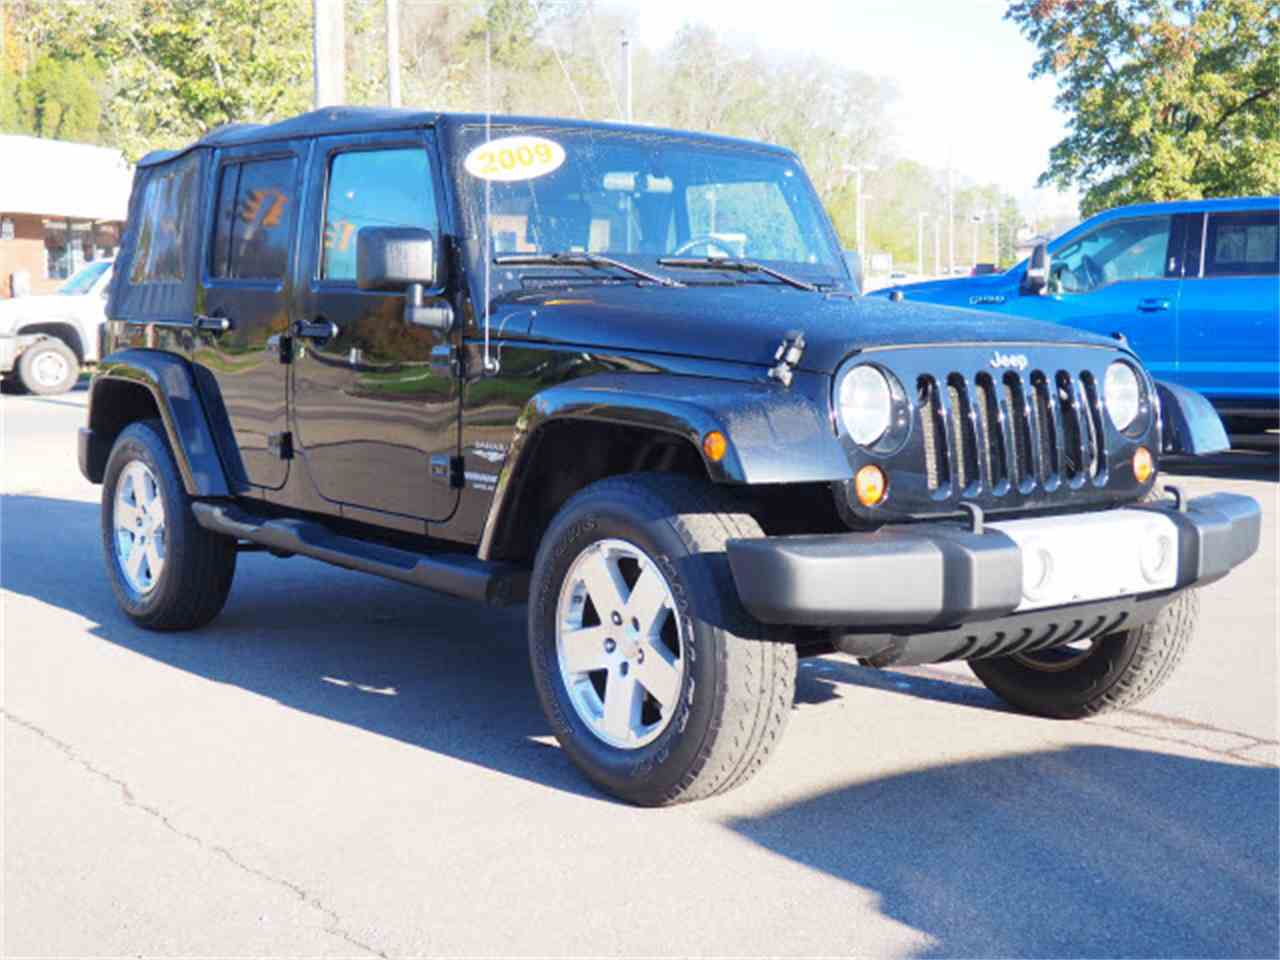 Large Picture of '09 Jeep Wrangler located in Loveland Ohio - $17,000.00 - LWMR